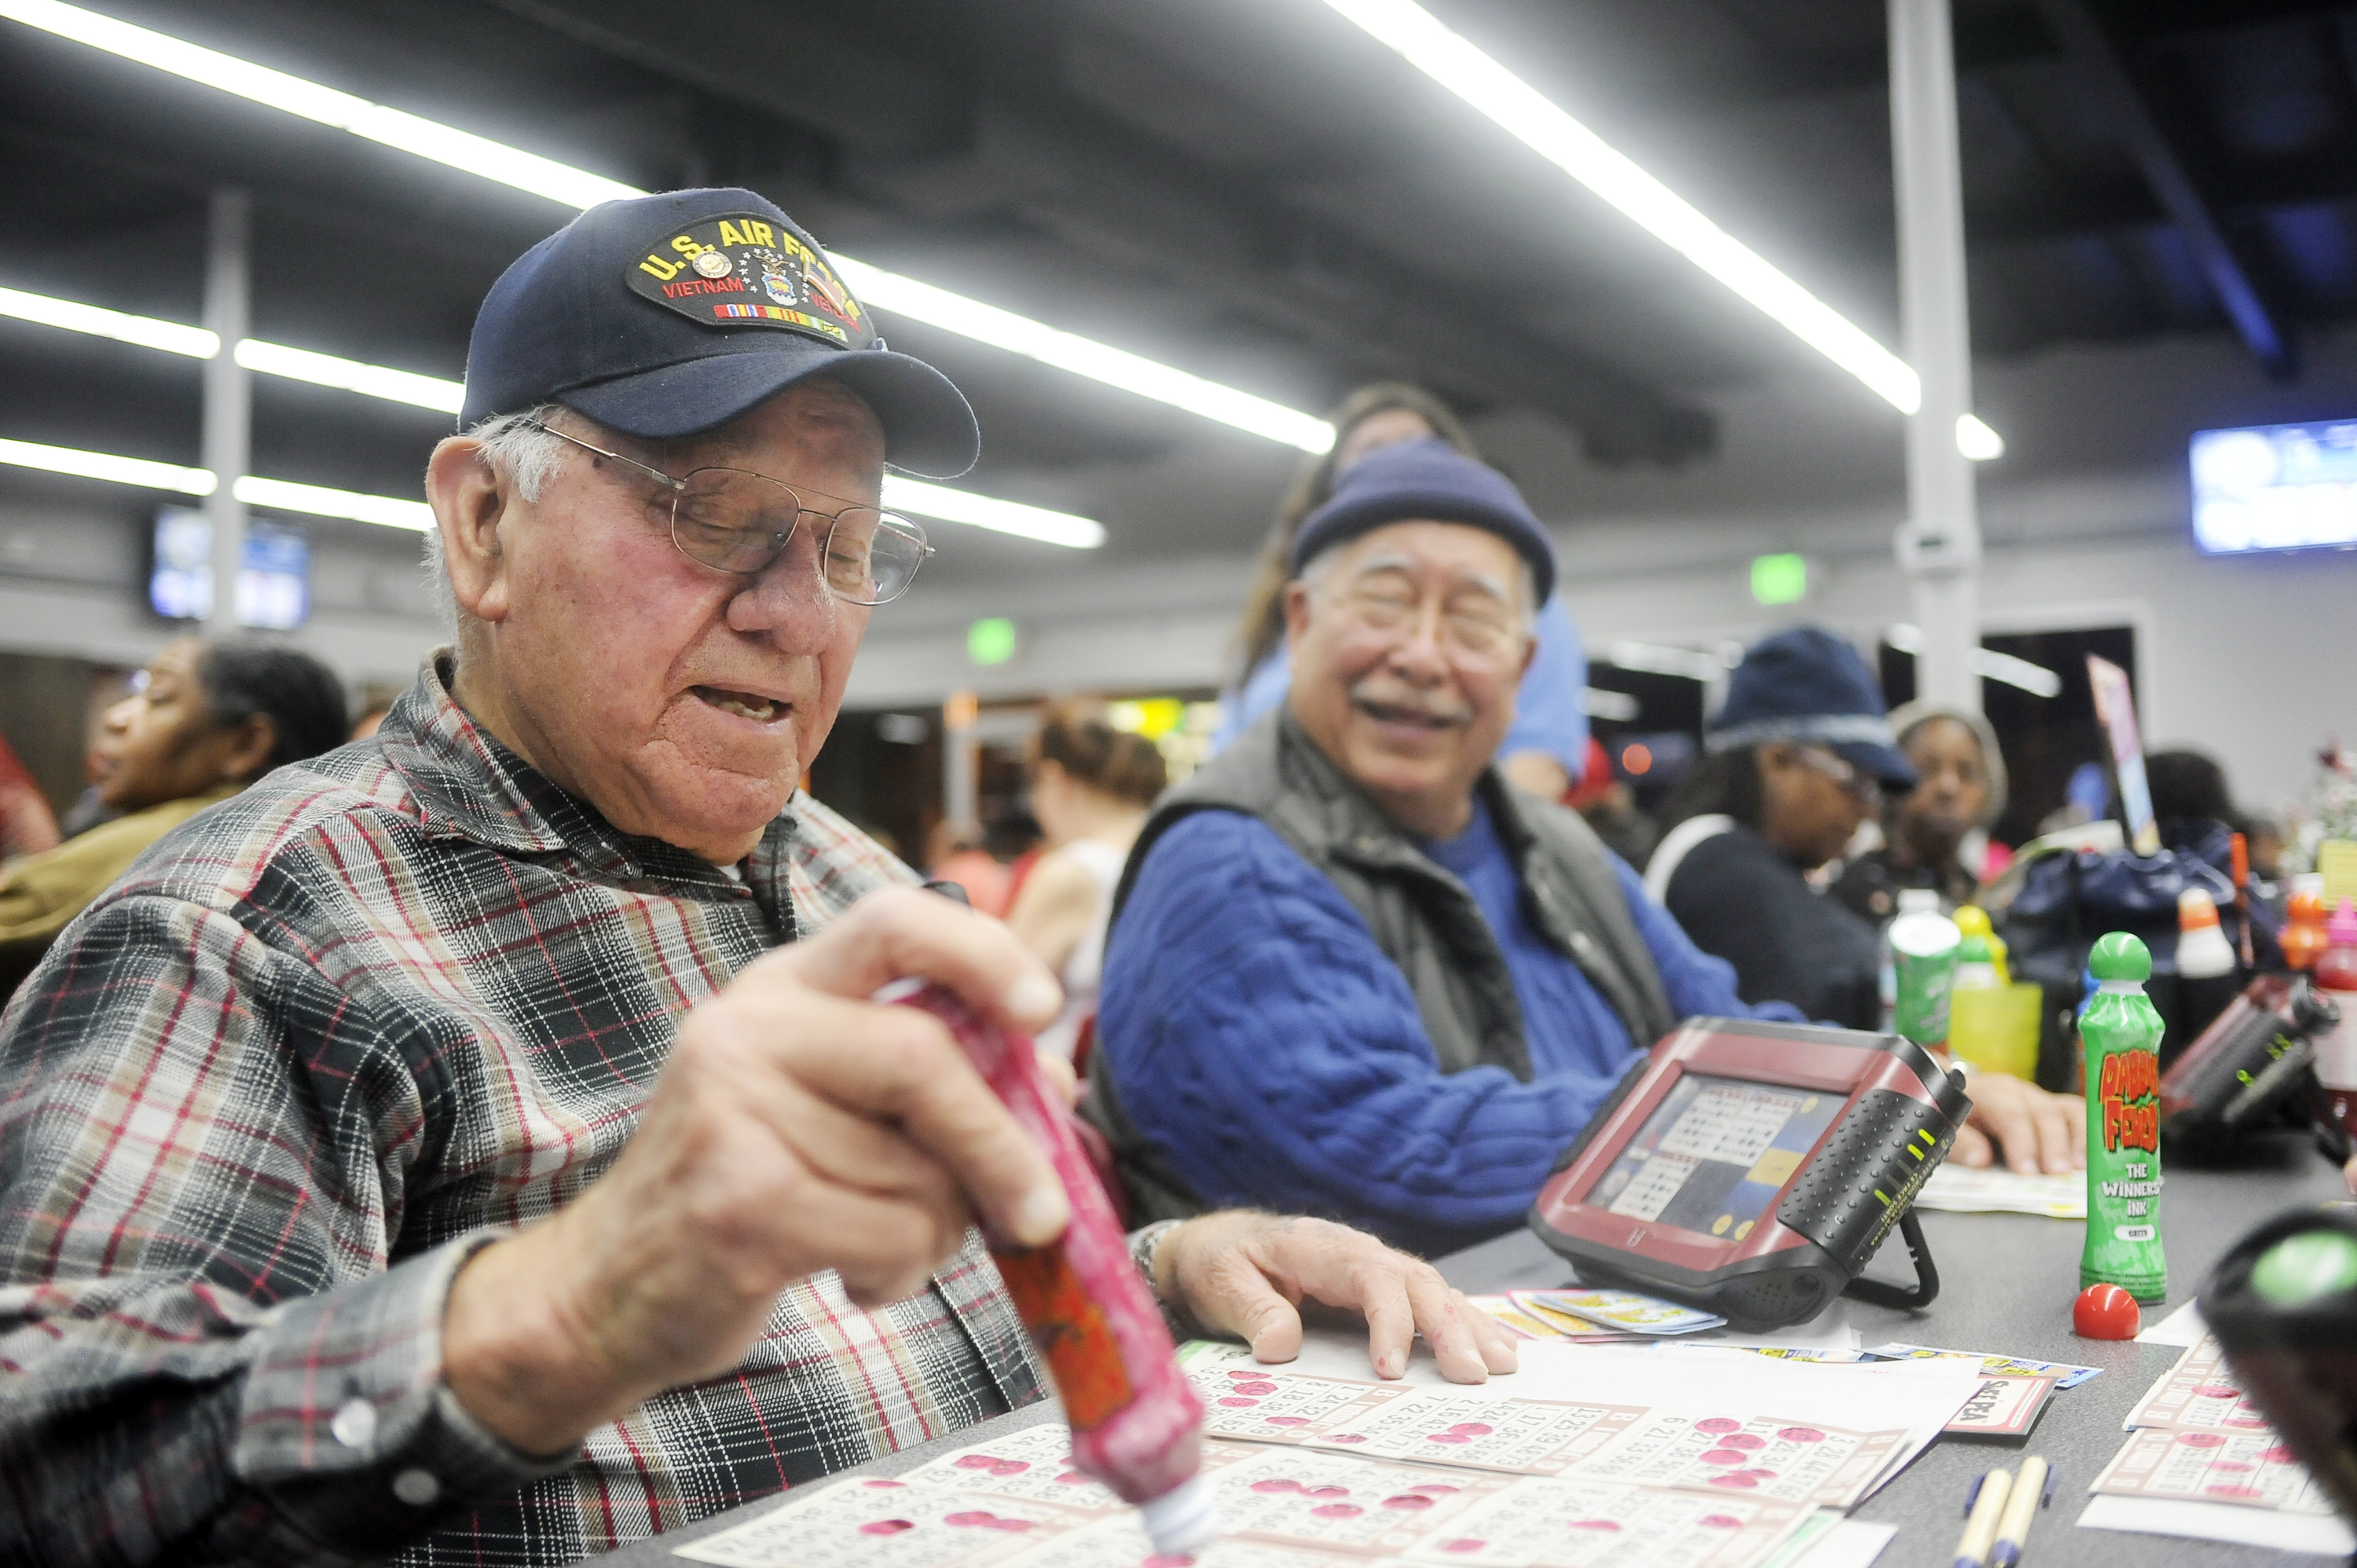 Harry Bordallo marks his cards while playing bingo Friday, at the Blue Devils Bingo Hall in Suisun City. (Adam Smith/Daily Republic)